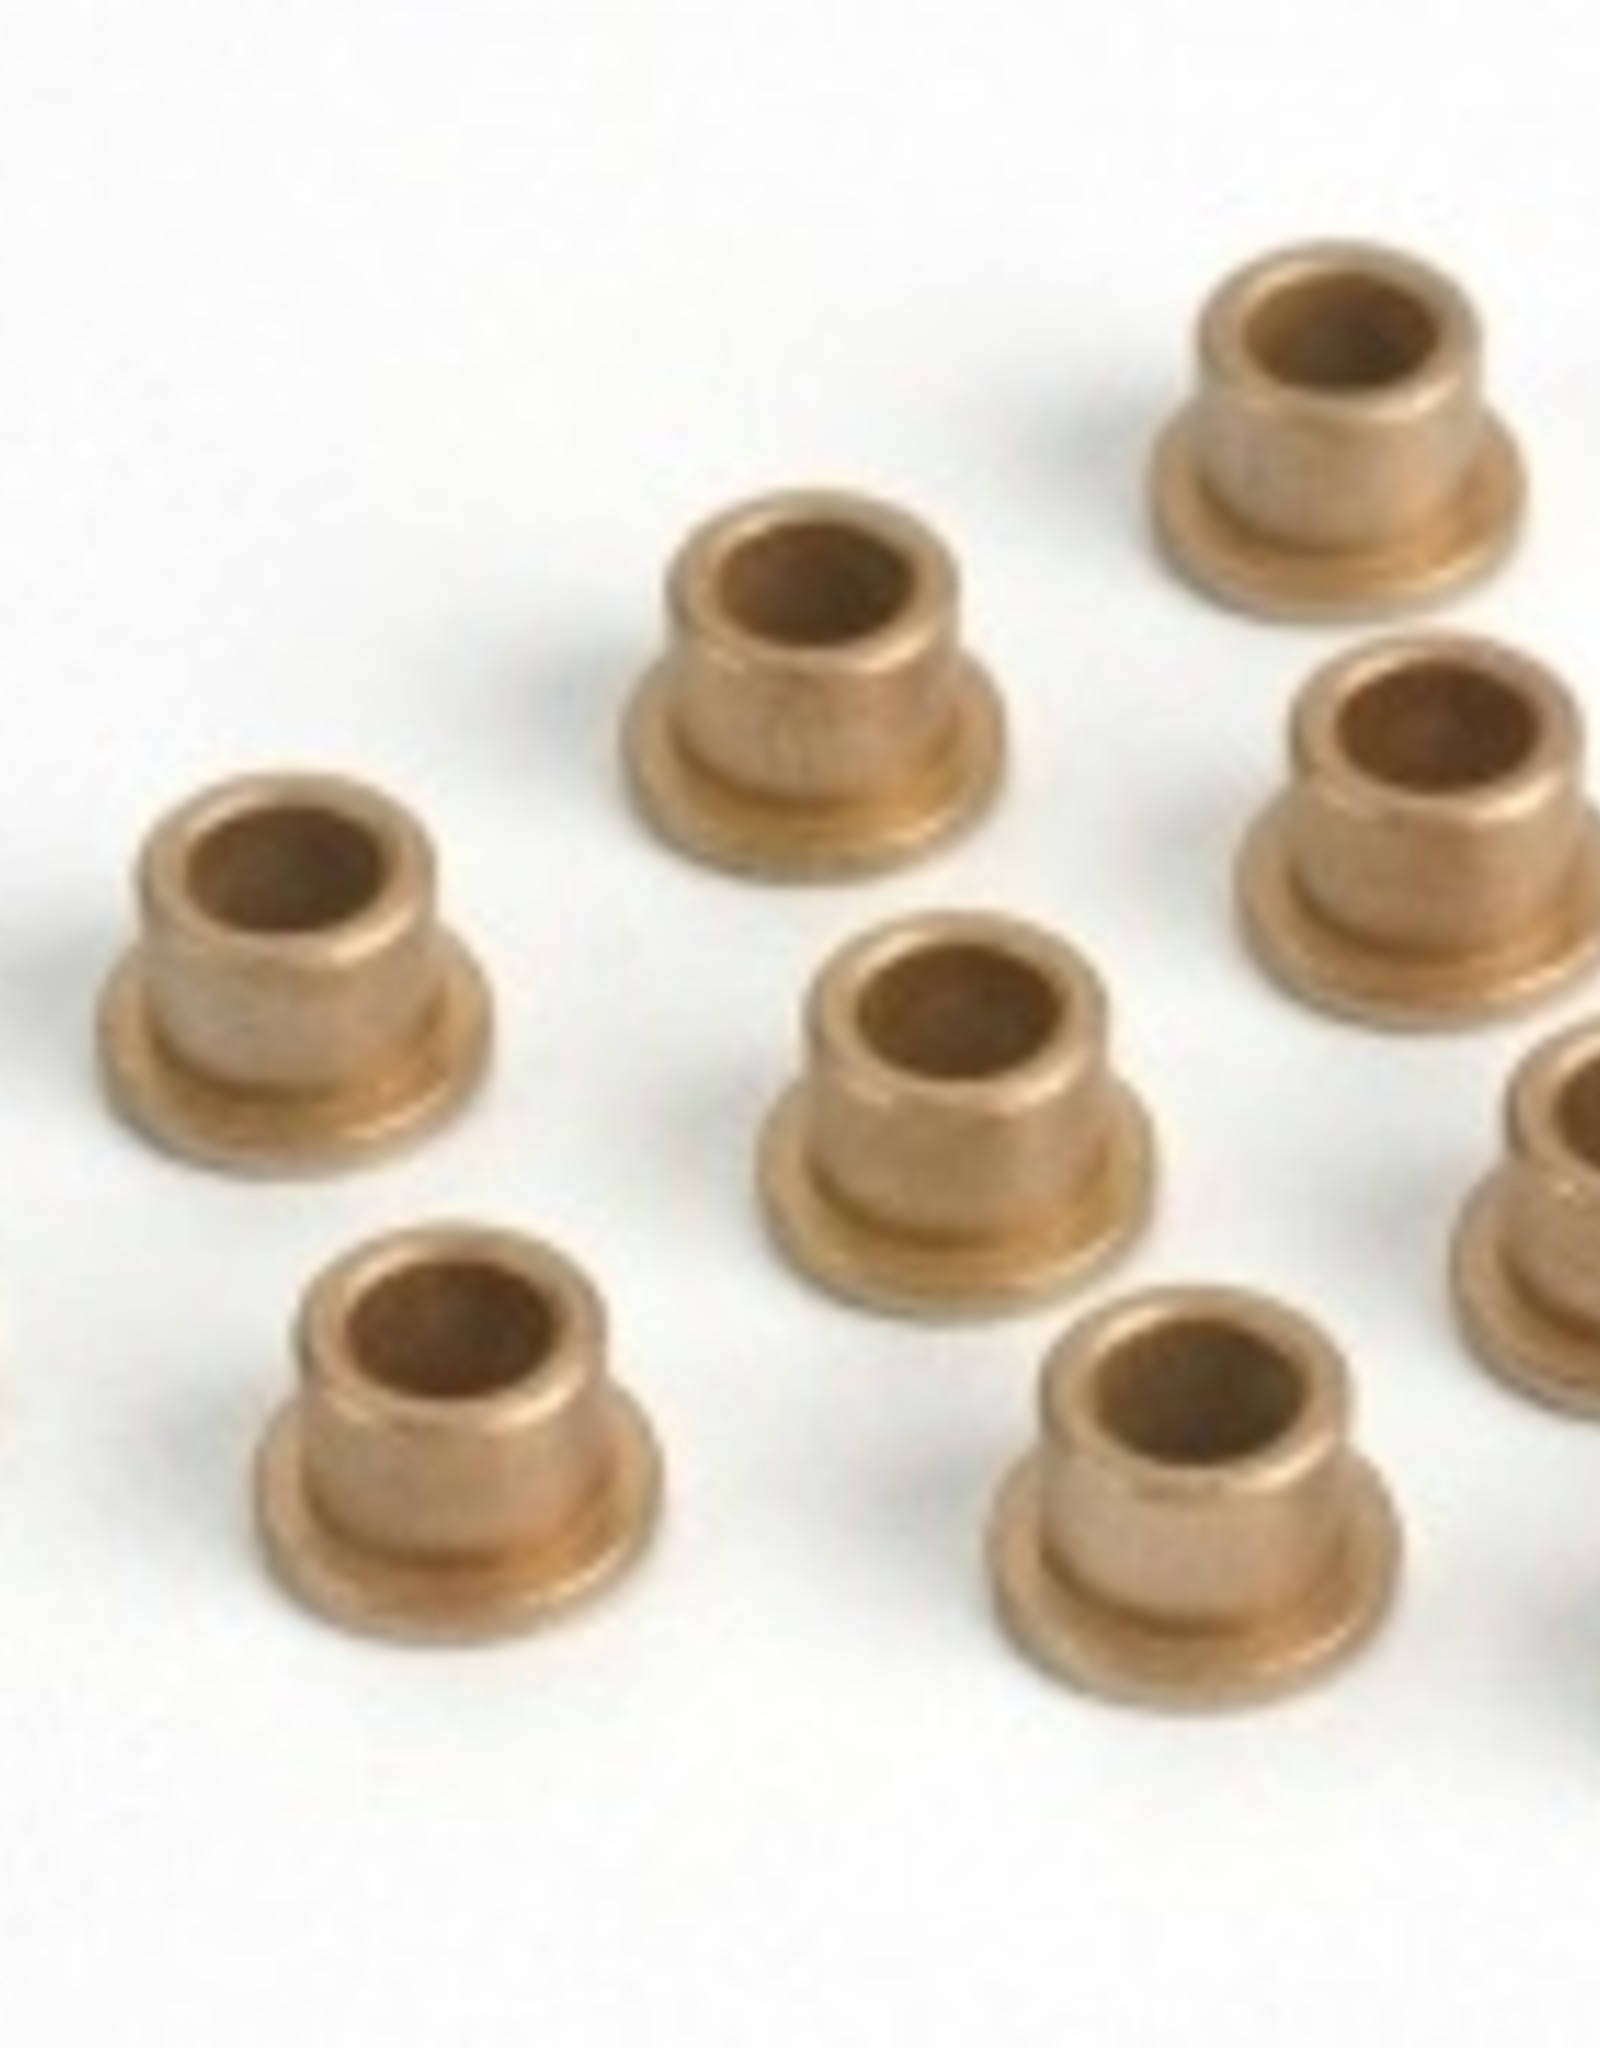 Traxxas Bushings, self-lubricating (10) (marine drive system)